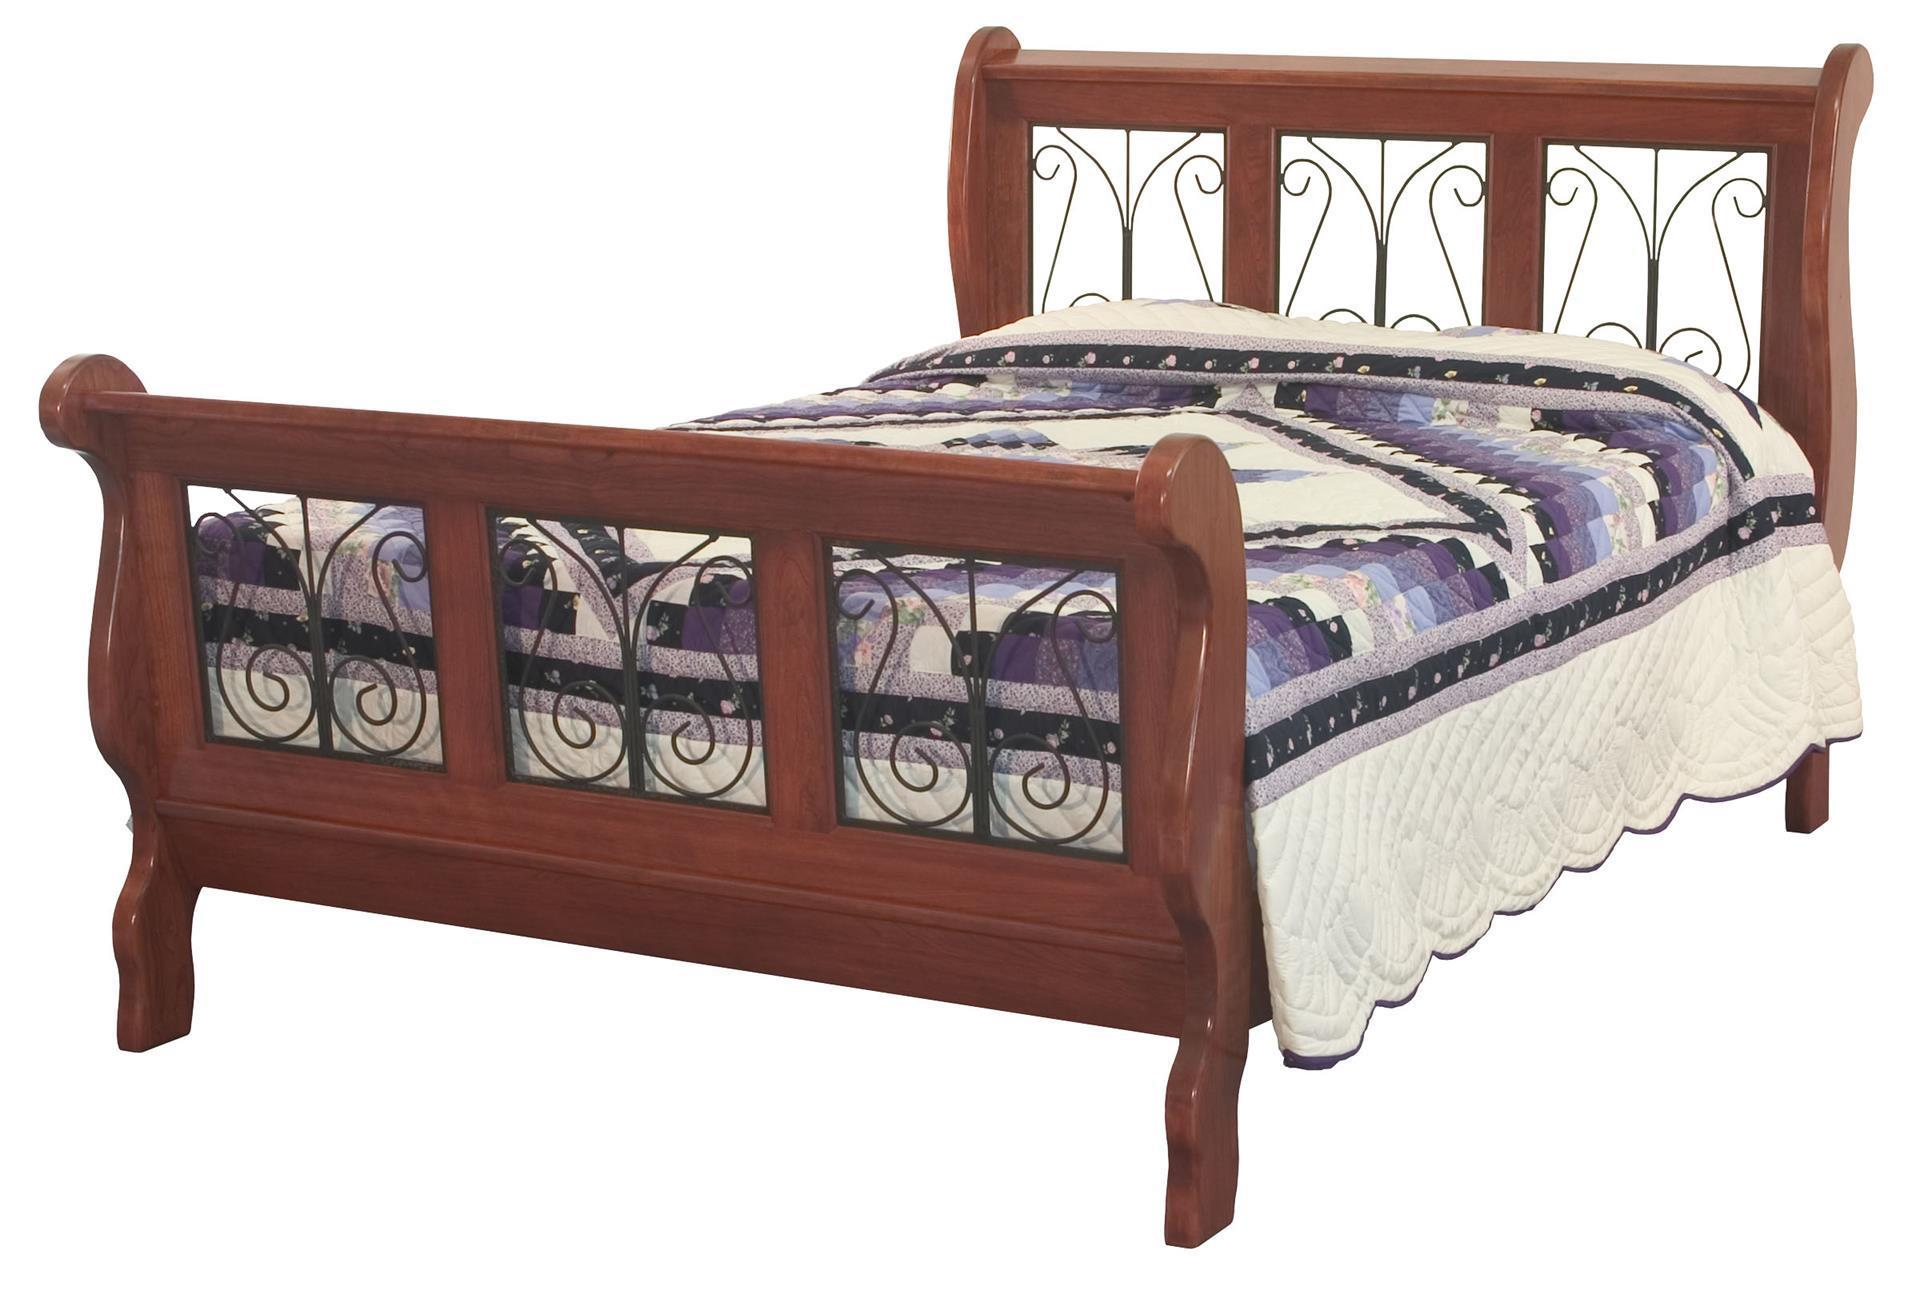 Amish Classic Wrought Iron Sleigh Bed From DutchCrafters Amish